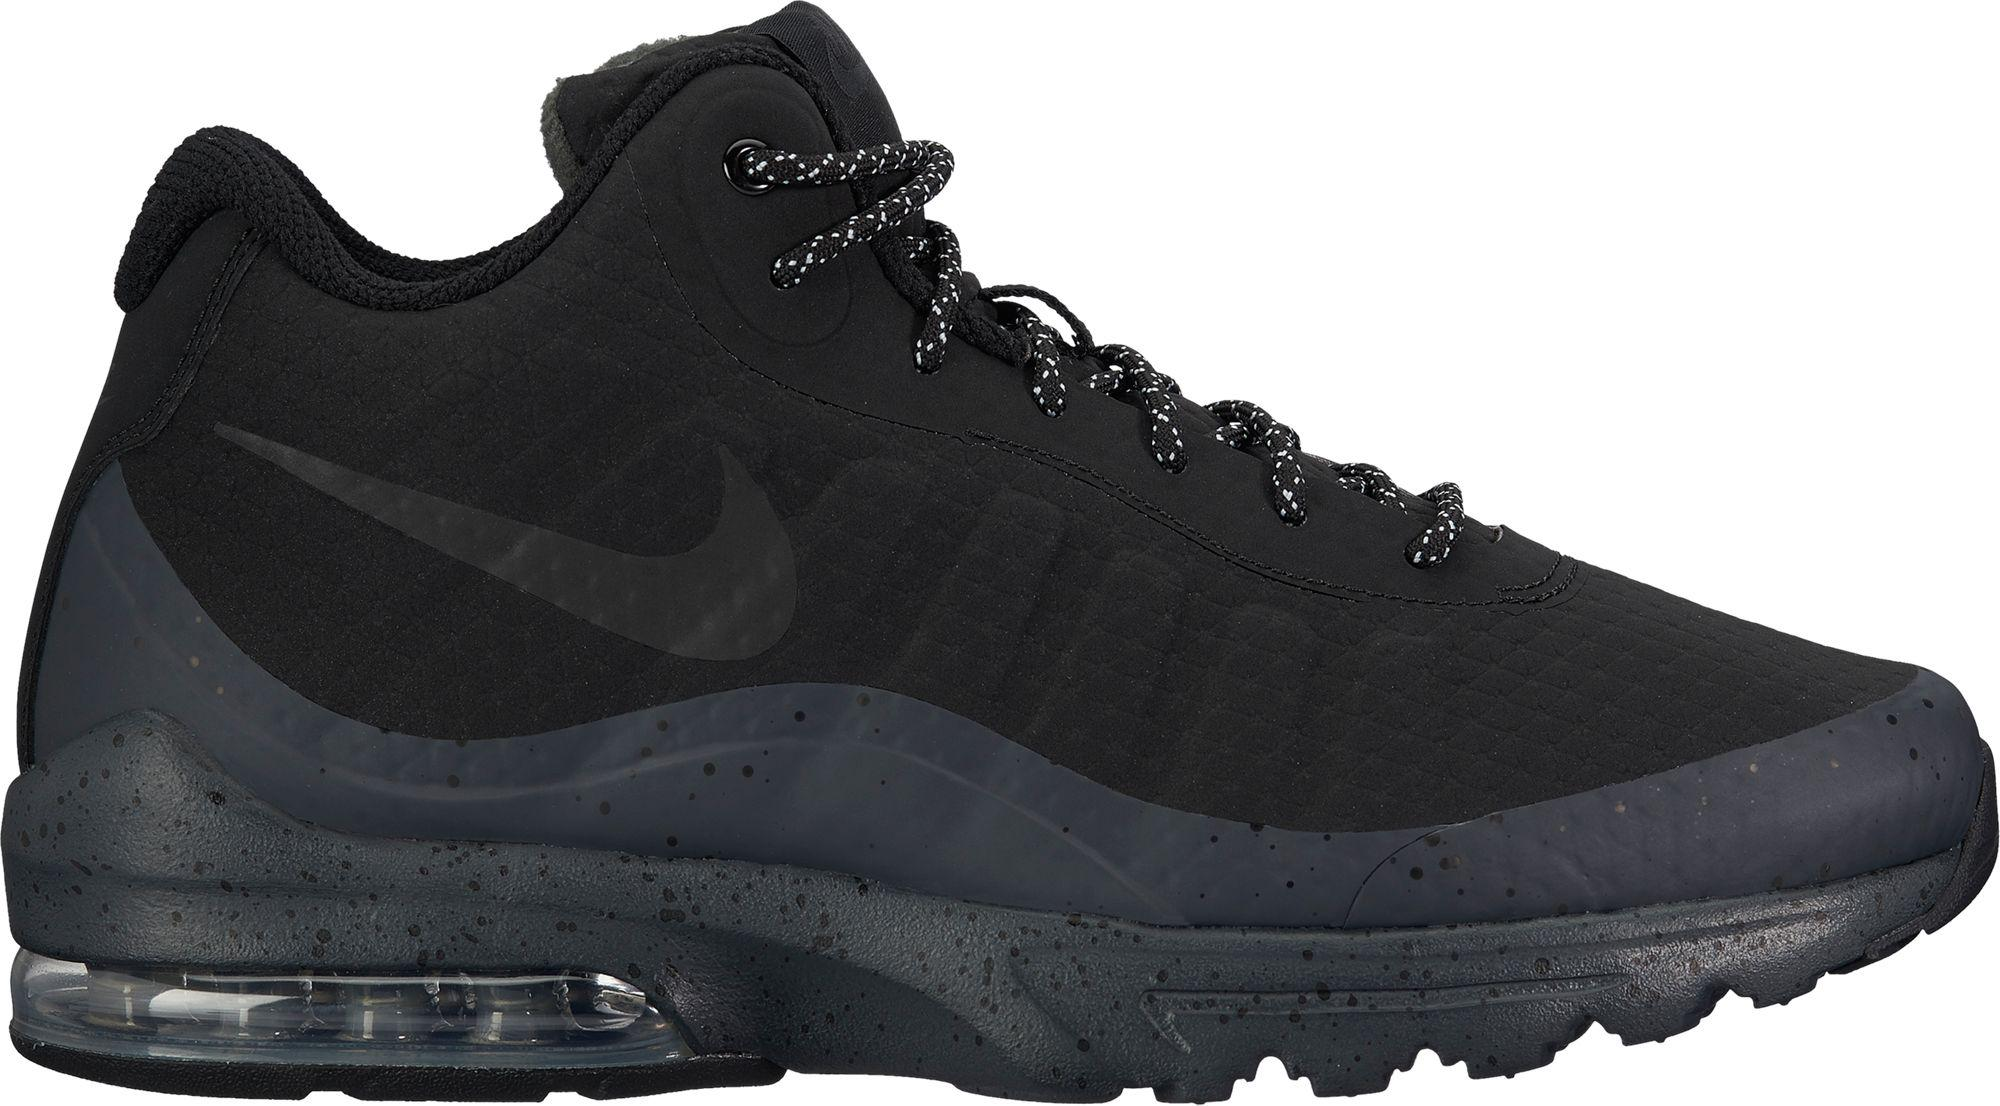 4efd46b1e131 Lyst - Nike Air Max Invigor Mid Shoes in Black for Men